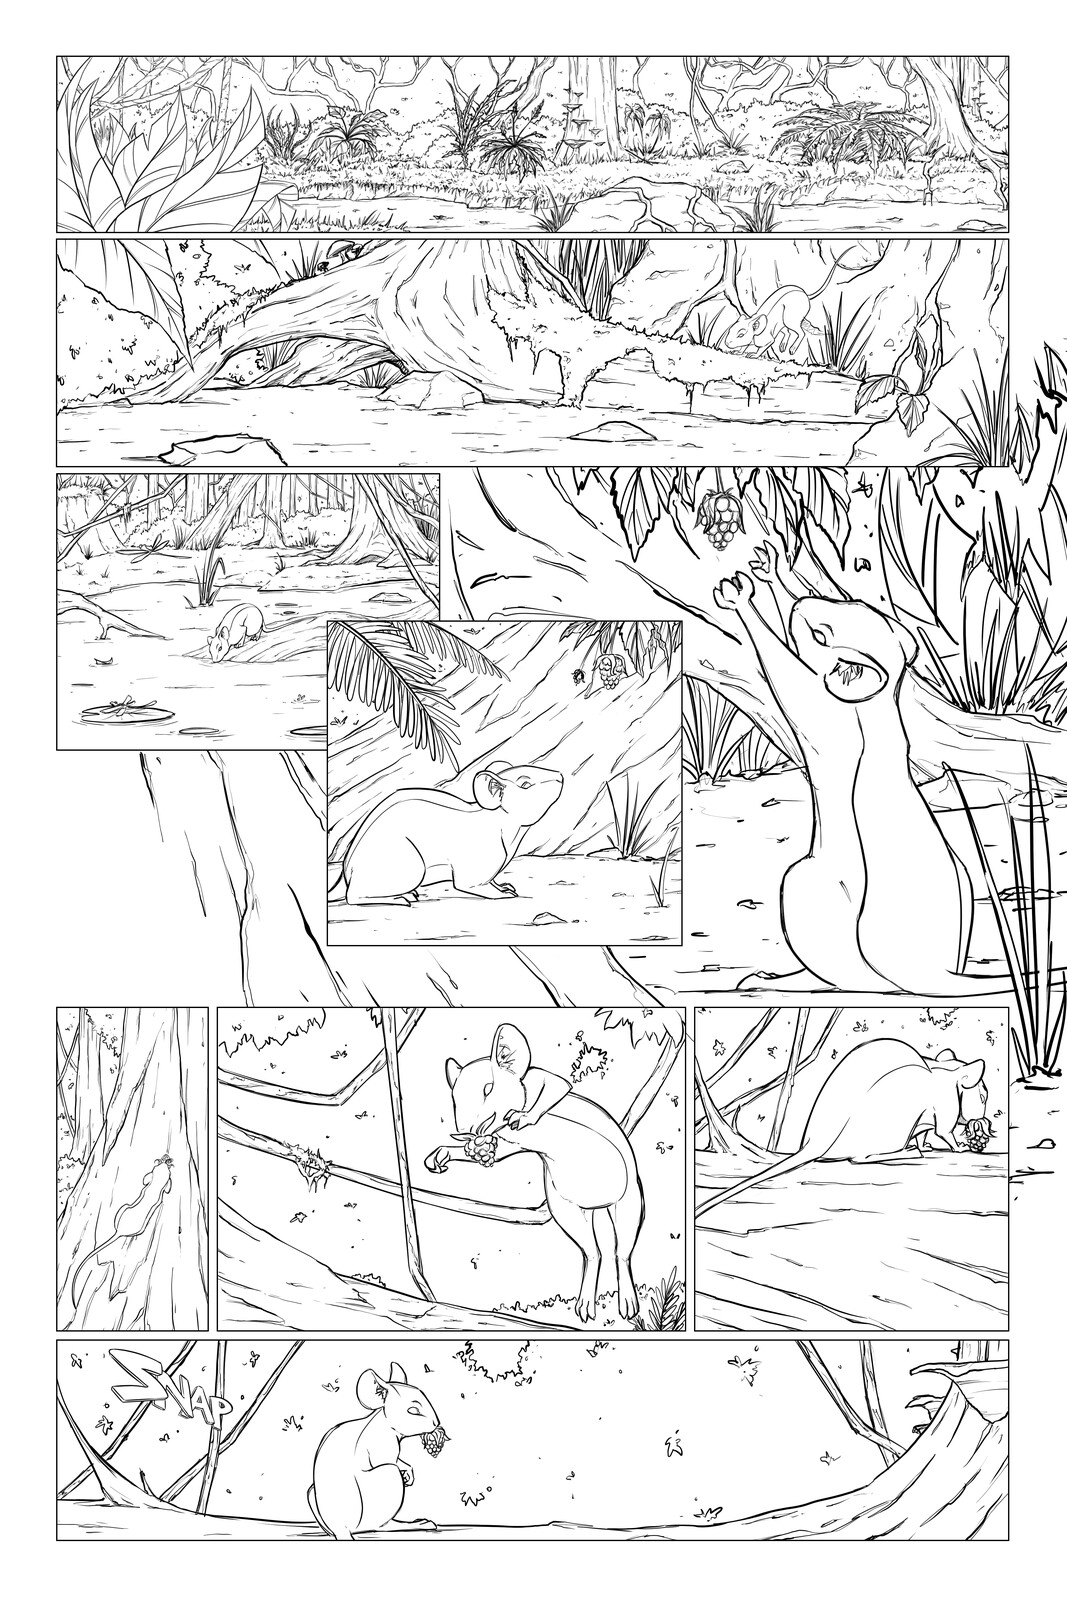 Will Not Bow Issue 4 - Page 1 - Line Art